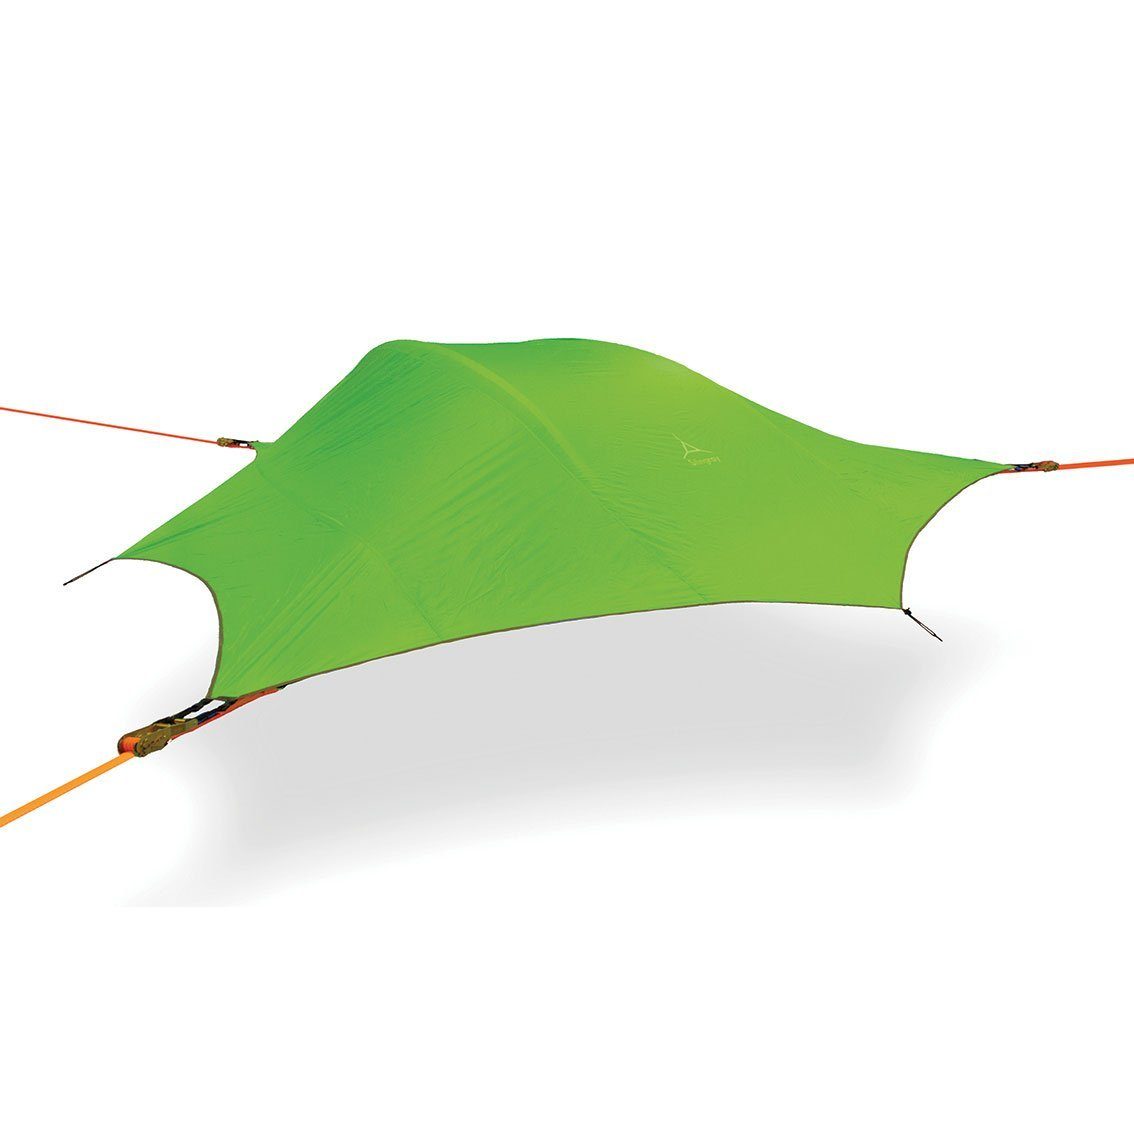 Tentsile | Stingray Tree Tent | 3 Man Suspended Hammock Tent | Fresh Green